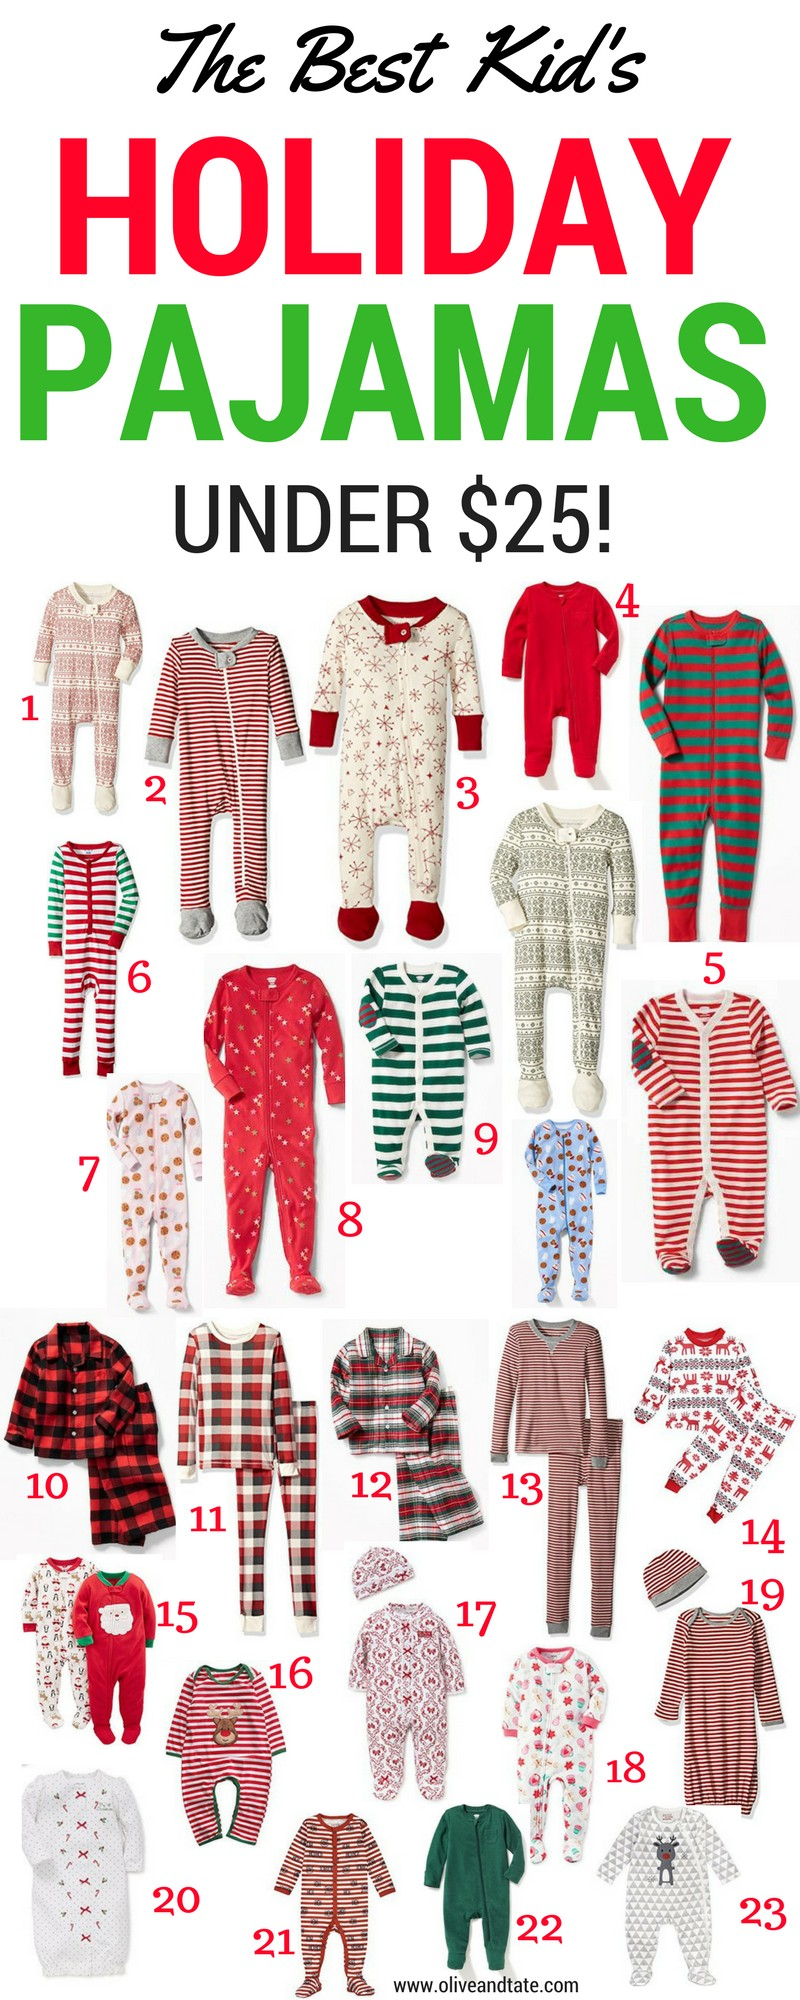 c13f175154 I'll admit that I bought my kid's their first matching set of monogrammed  Christmas pajamas in September (ok, fine, August) but who can blame me?